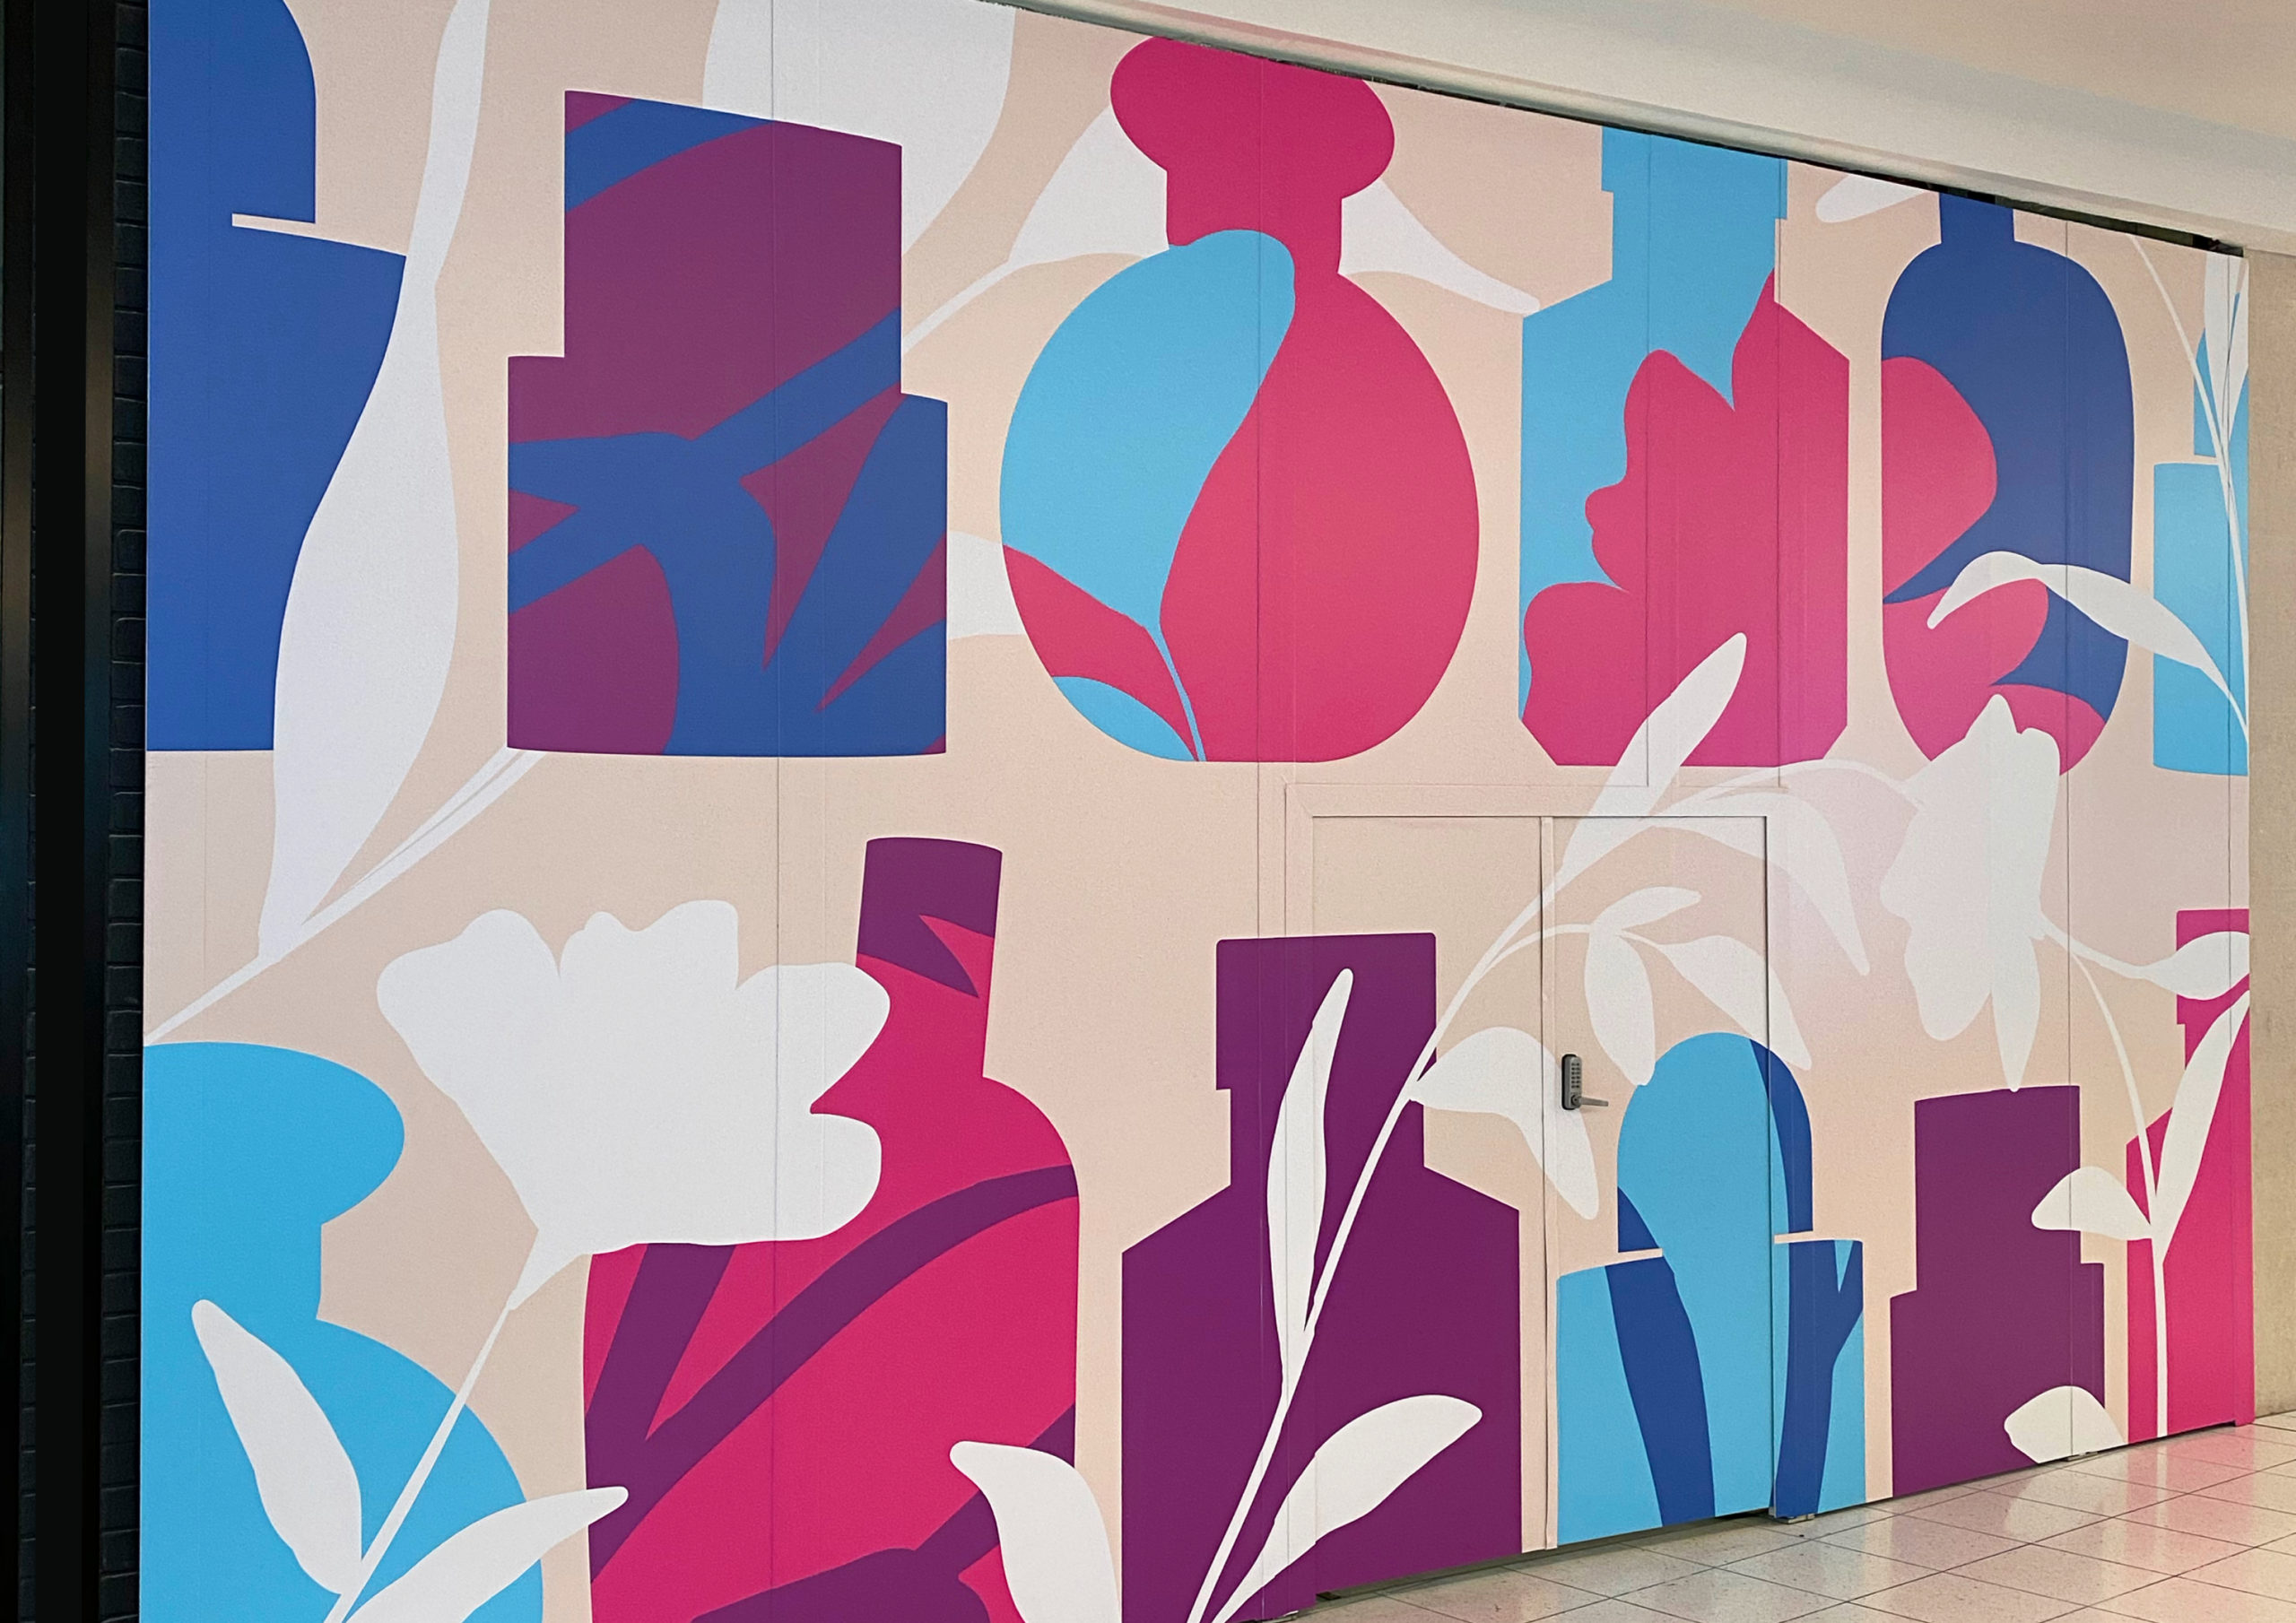 large scale illustration in pink and blue of perfume bottles and florals